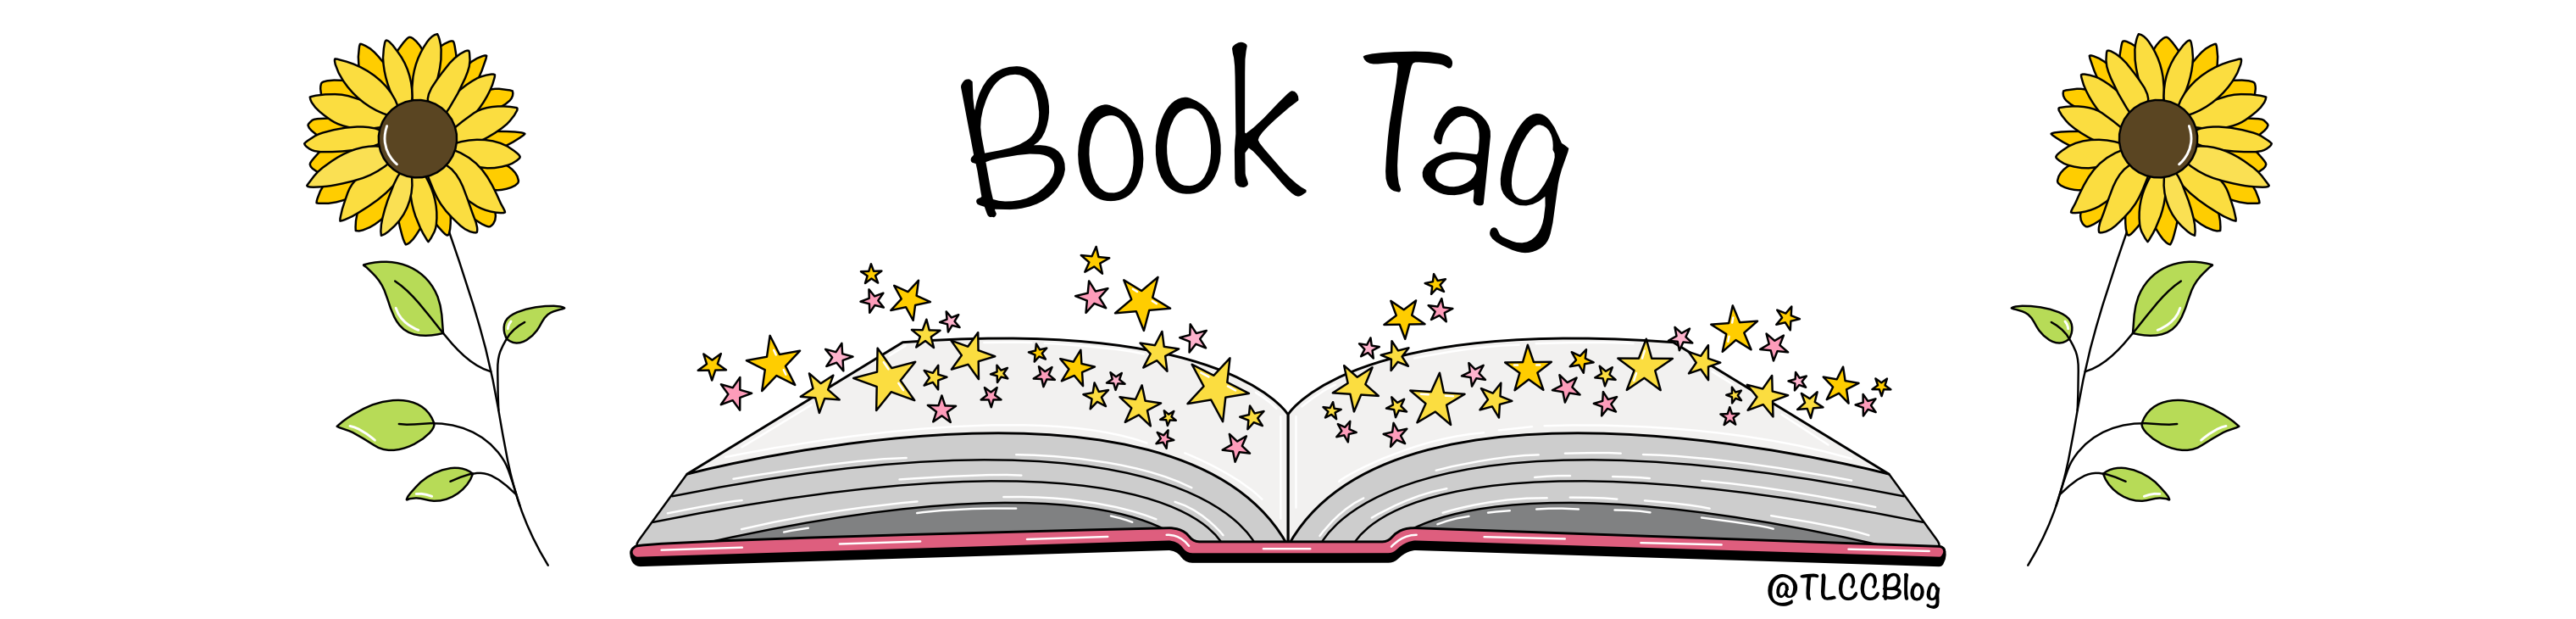 Book Tag Header